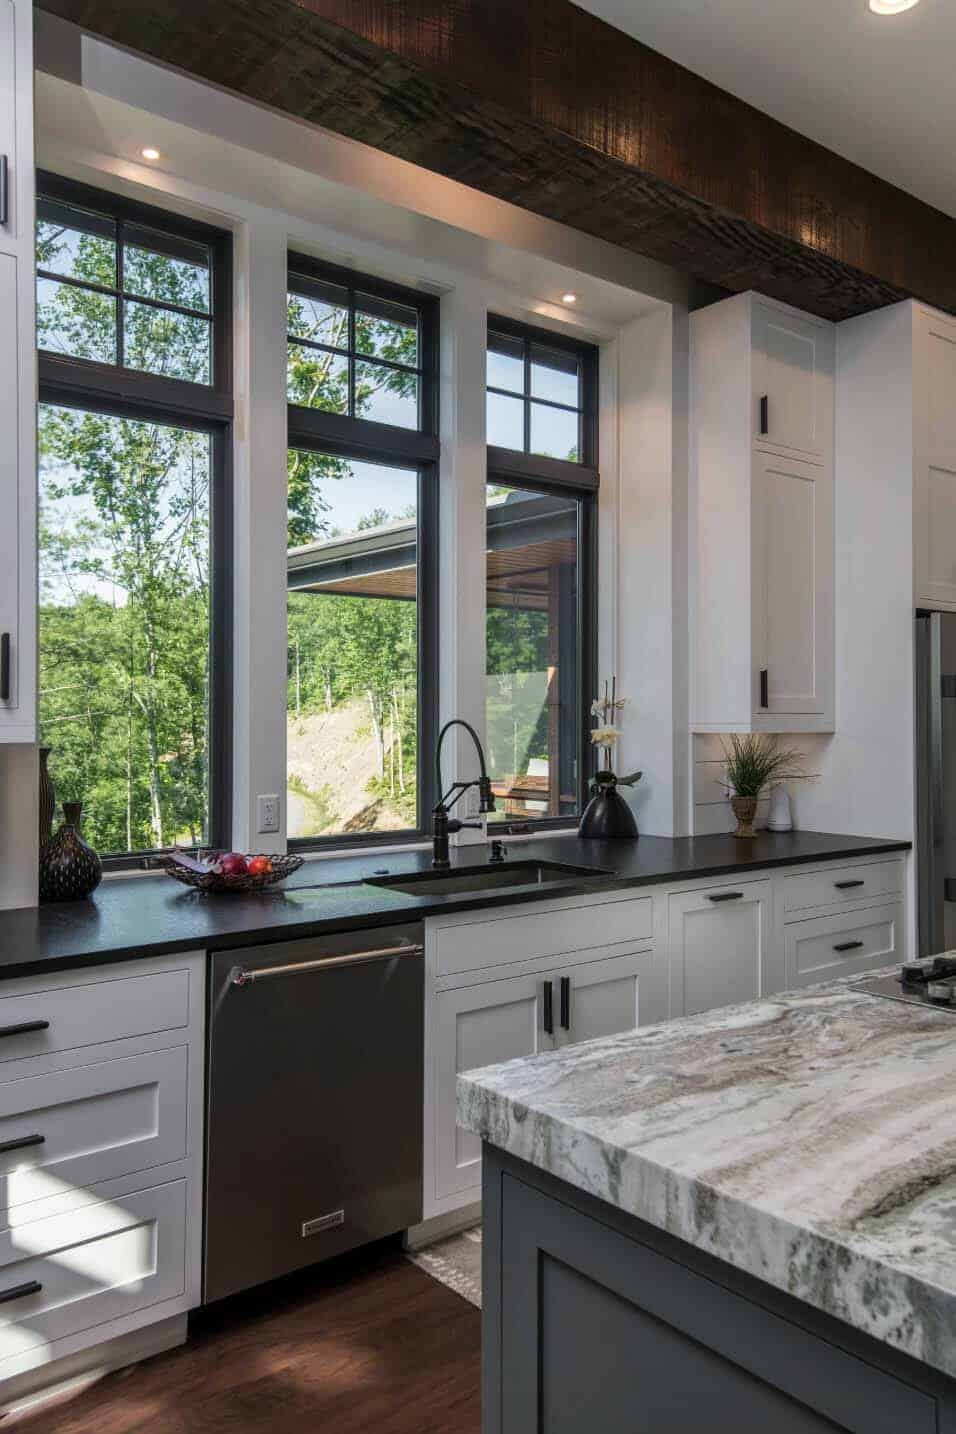 this kitchen features white cabinets and black countertops with a grey center island. inset white shaker cabinets are adorned with matte black hardware. the room is flooded with natural light by three large windows